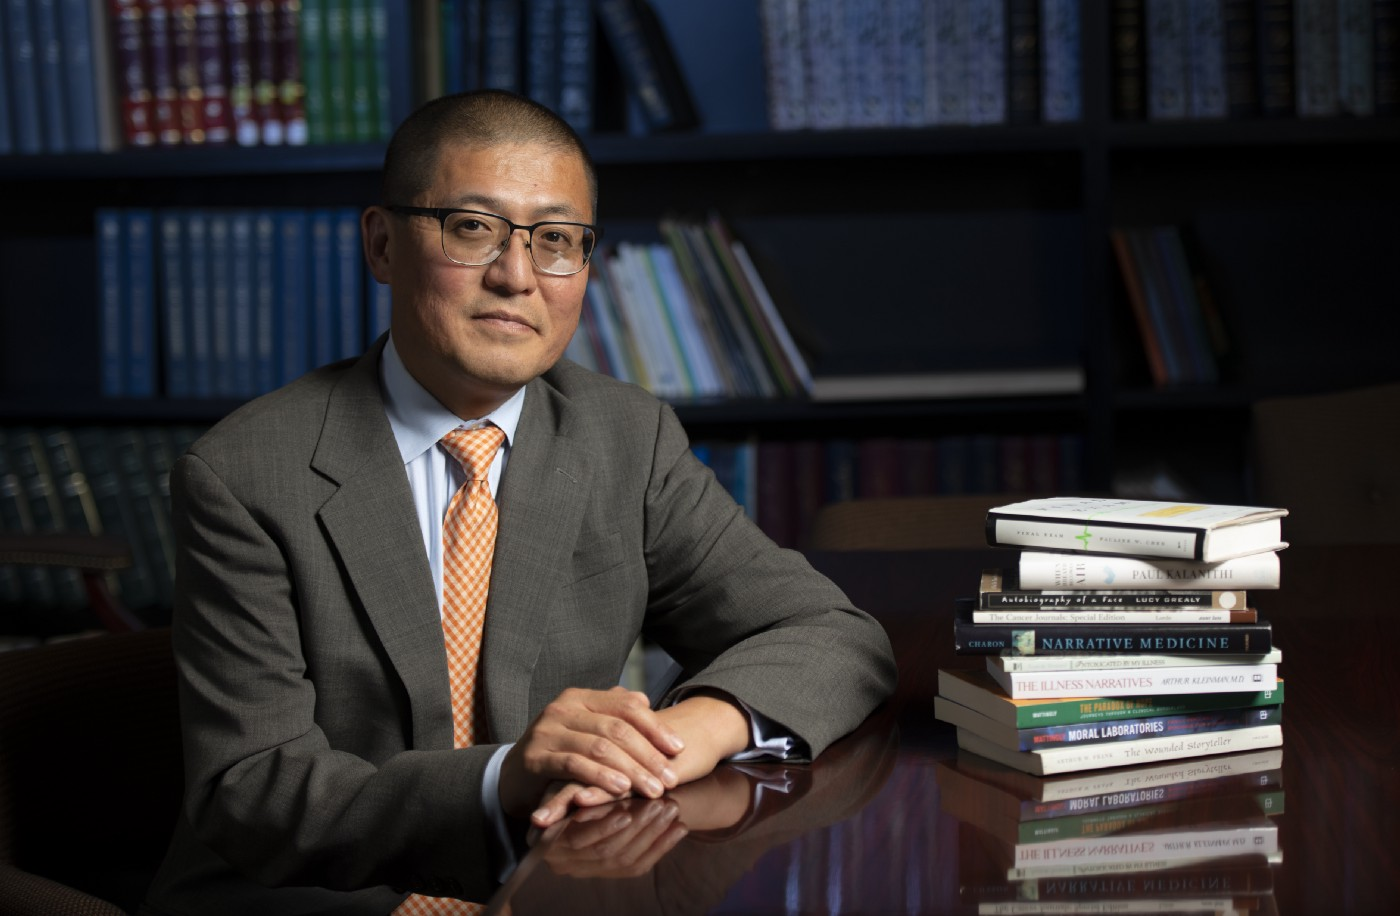 James Kyung-jin Lee rests his hands on the table in front of him, which is stacked with books. Behind him is a book case.